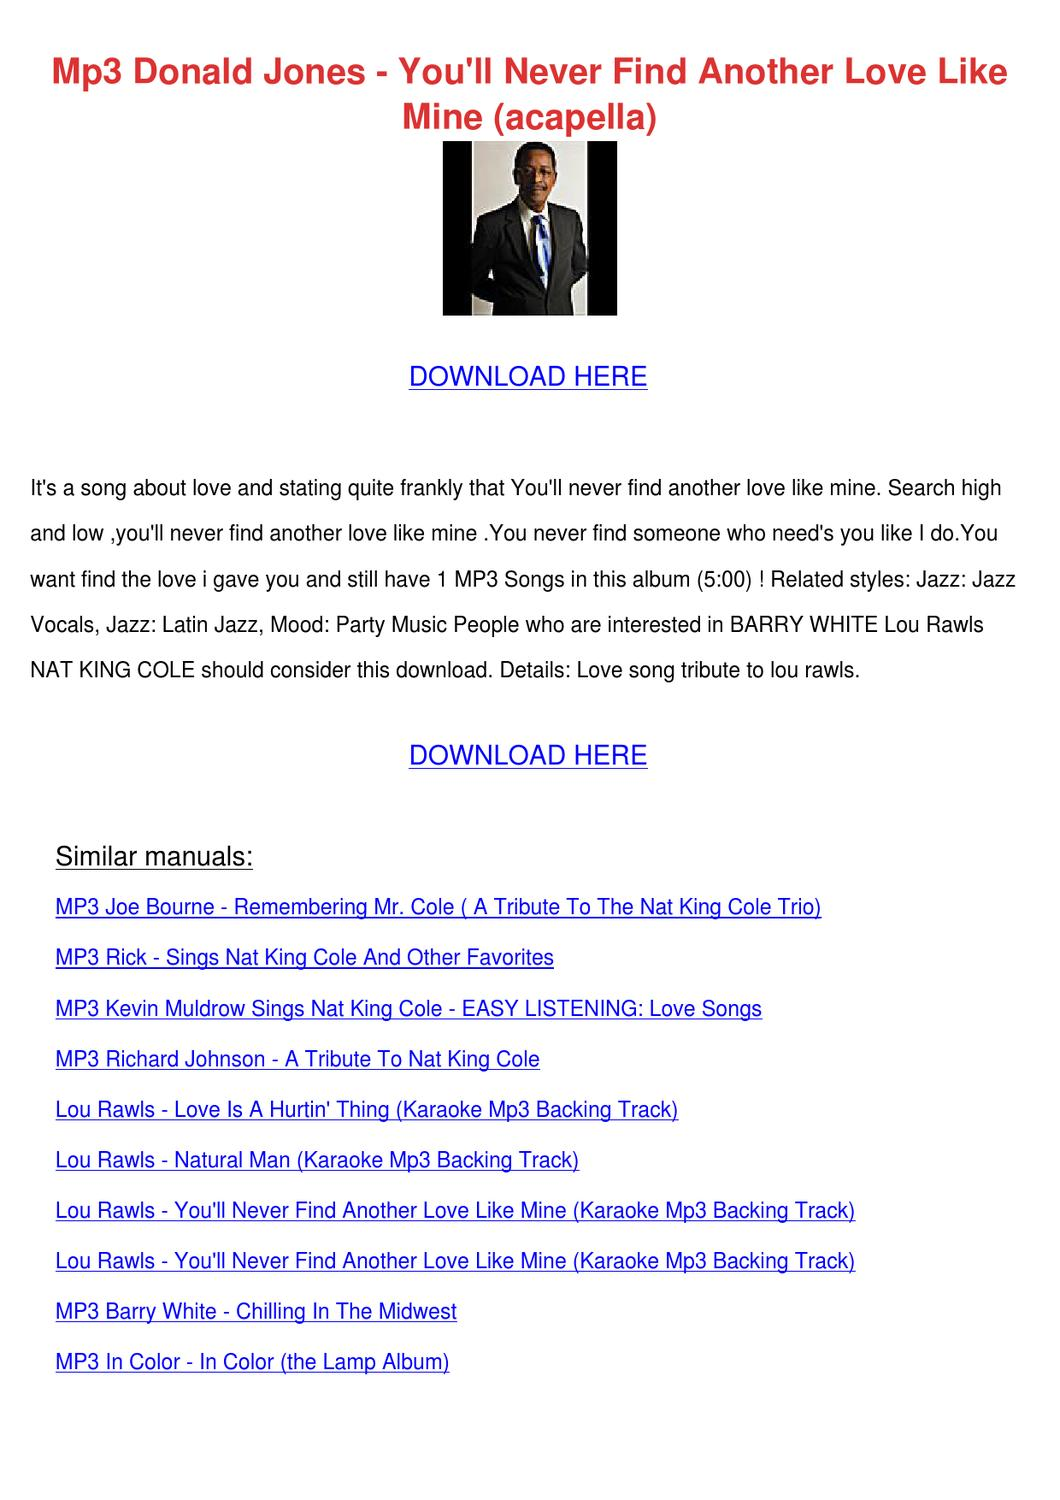 Mp3 Donald Jones Youll Never Find Another Lov by HershelFay - issuu